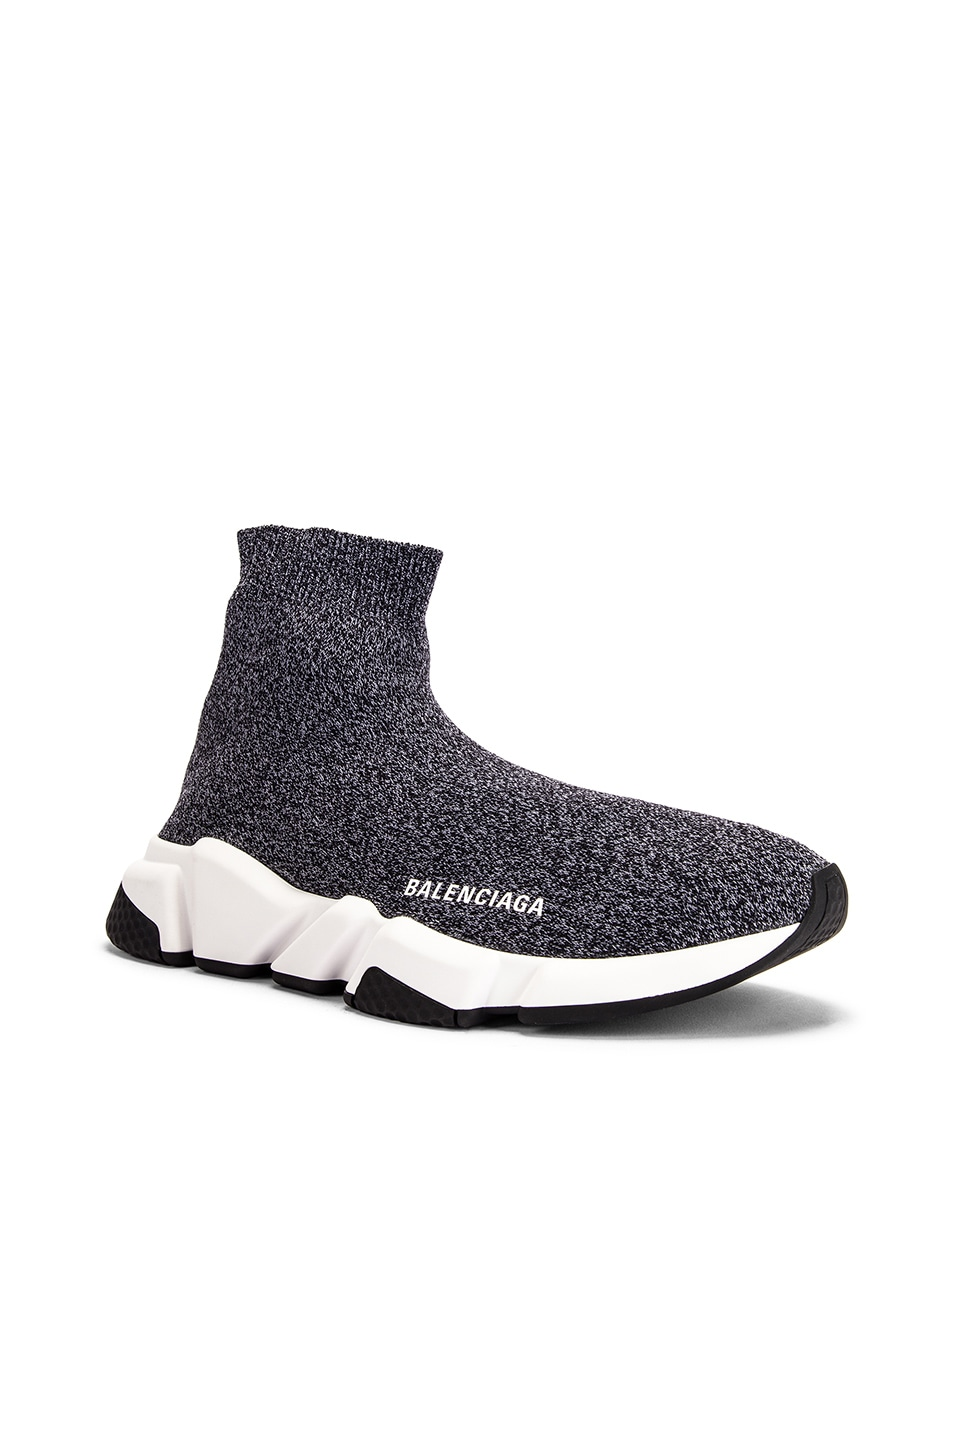 Image 2 of Balenciaga Speed Knit Sneakers in Black & White